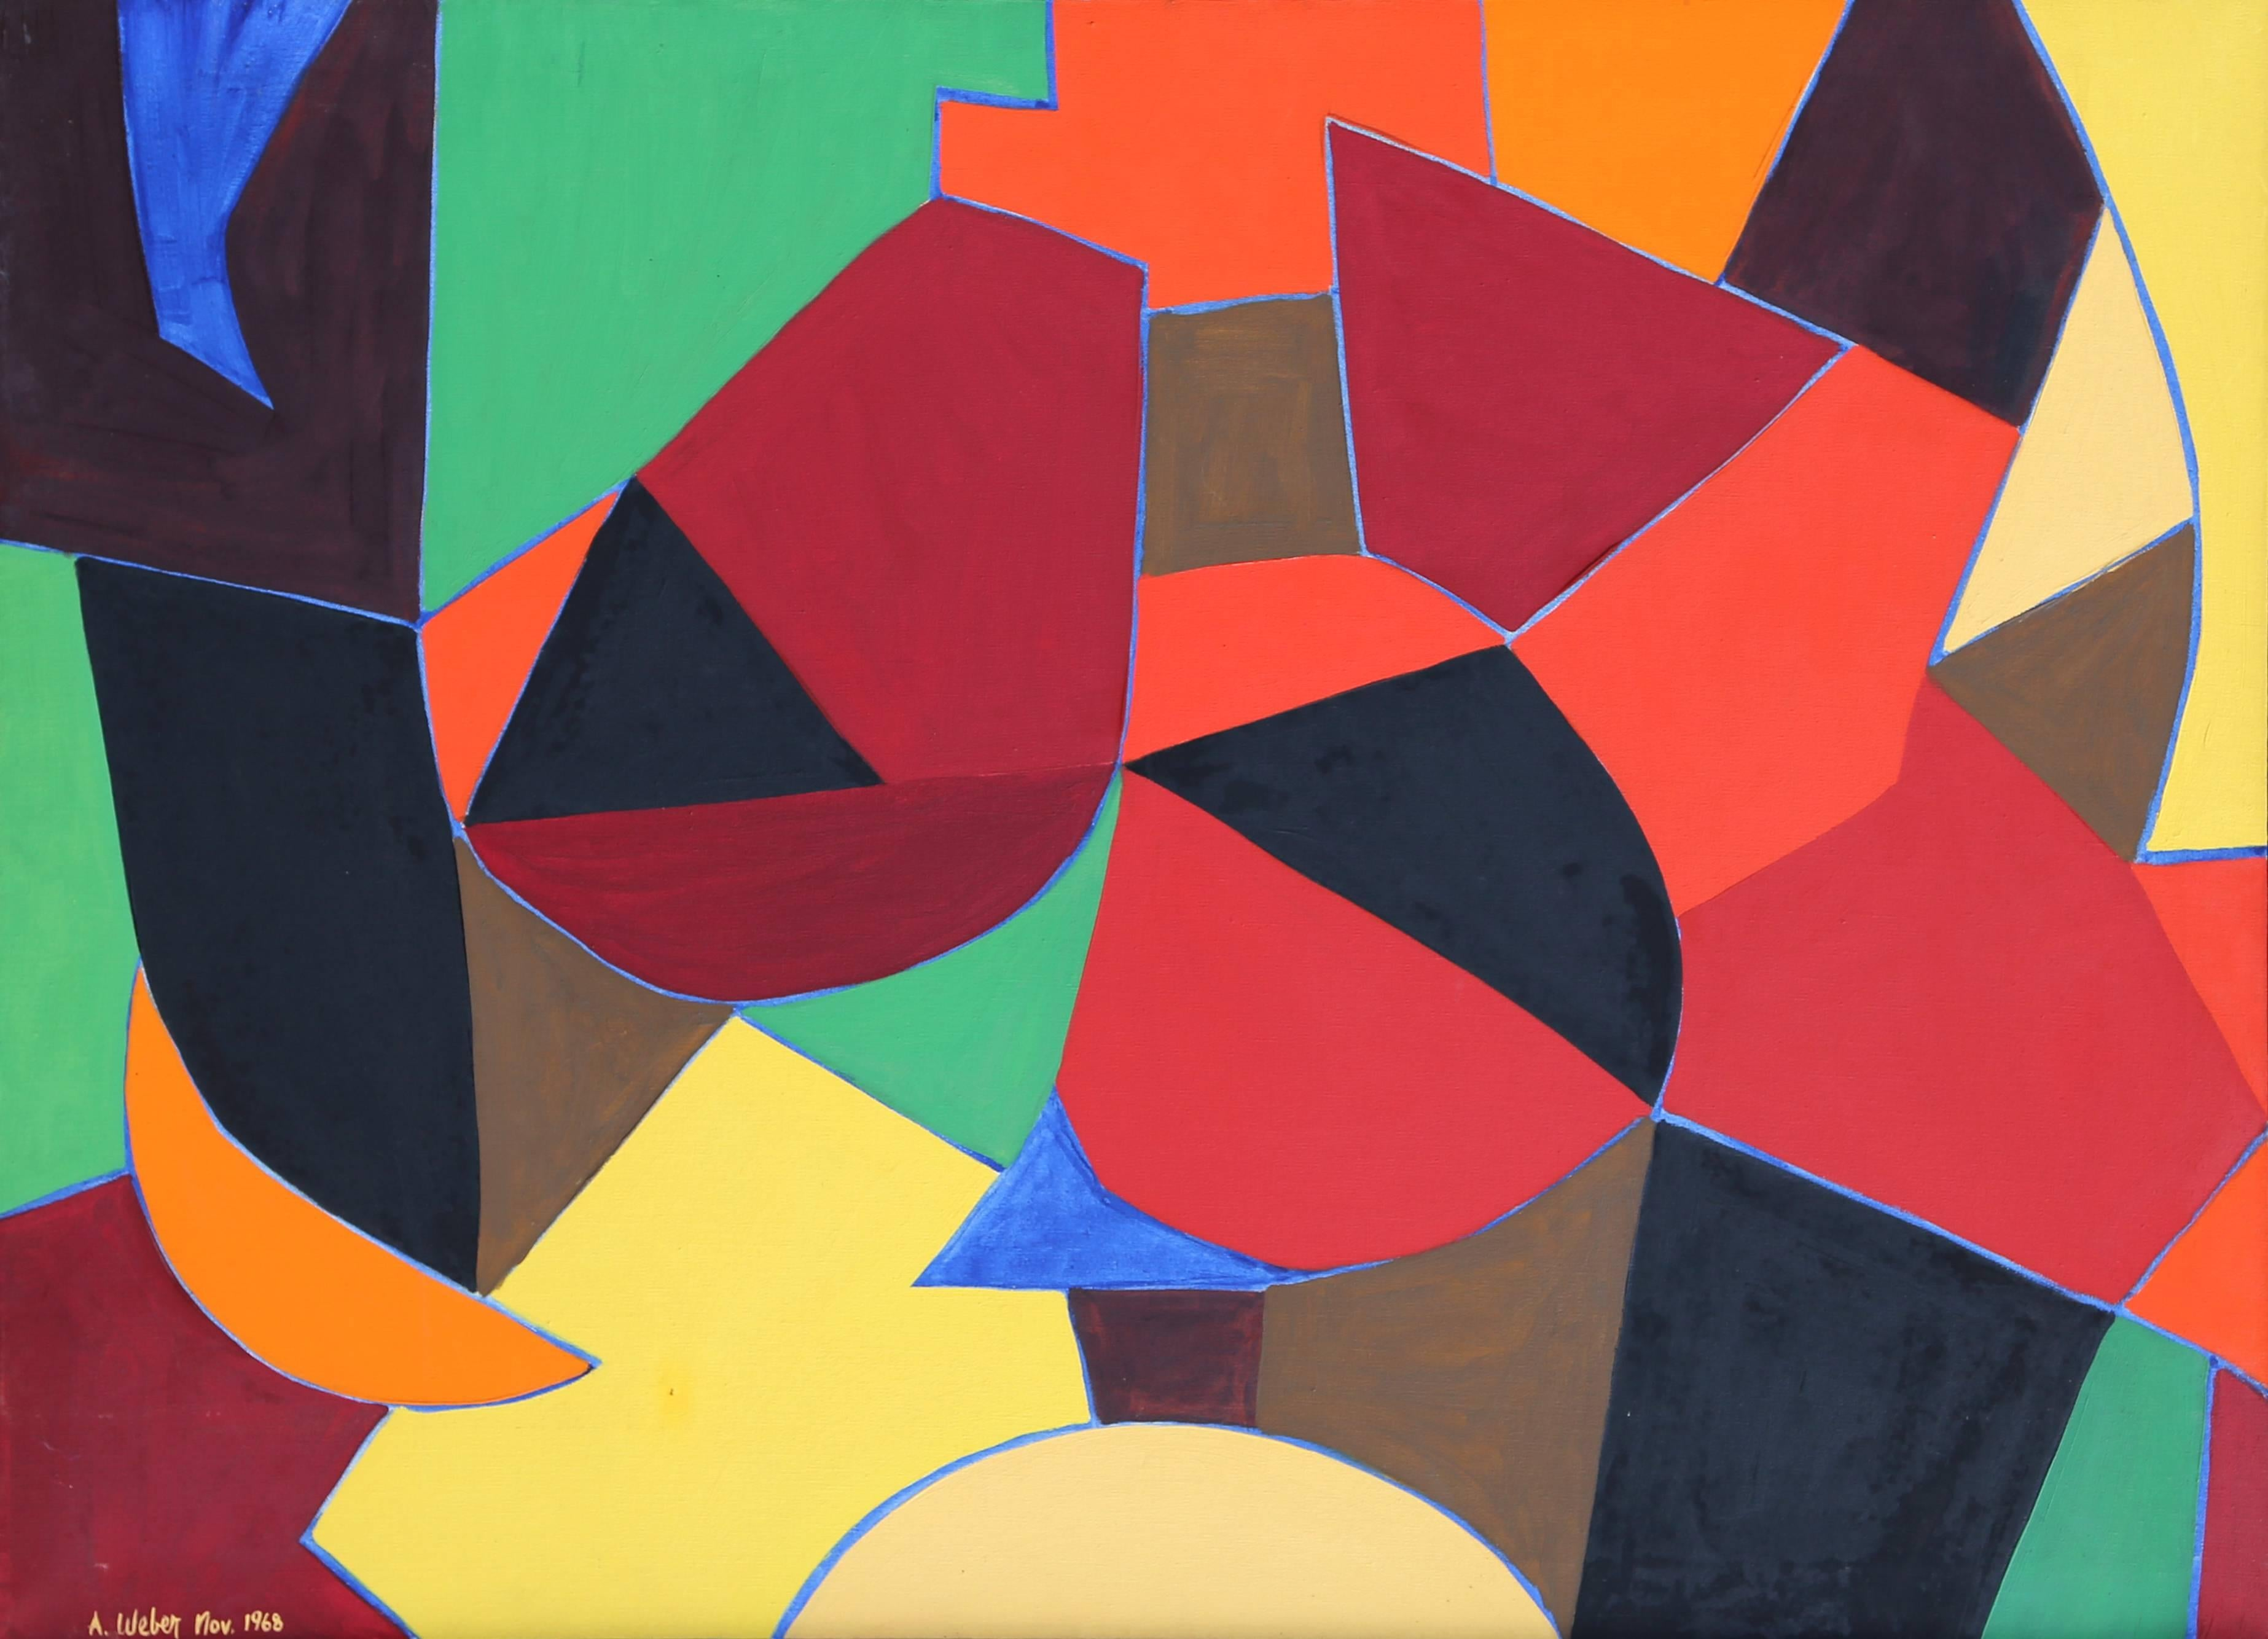 Colorful Abstract painting by Arnold Weber 1968